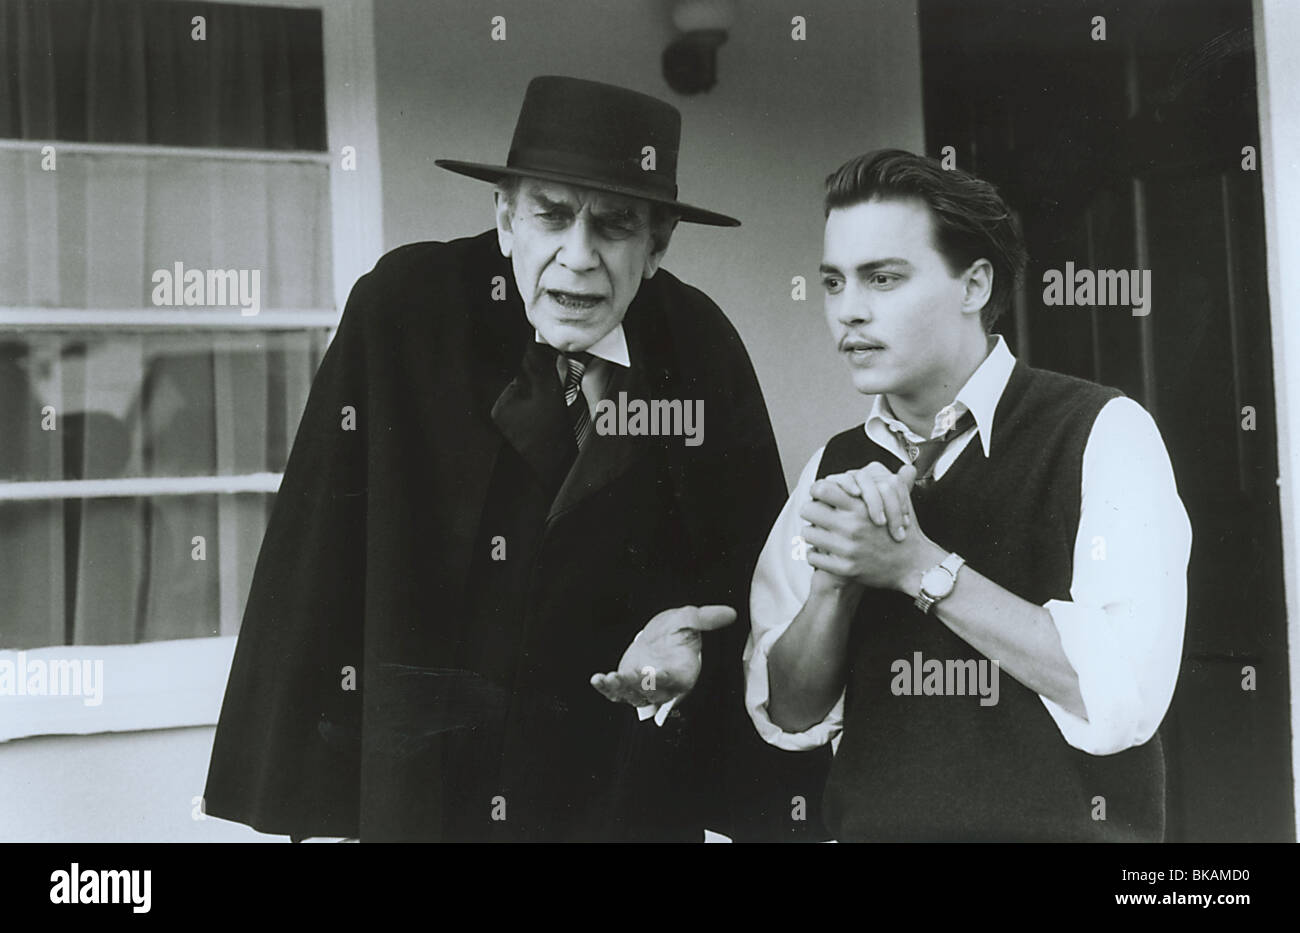 ED WOOD (1994) MARTIN LANDAU, JOHNNY DEPP EDW 032P - Stock Image